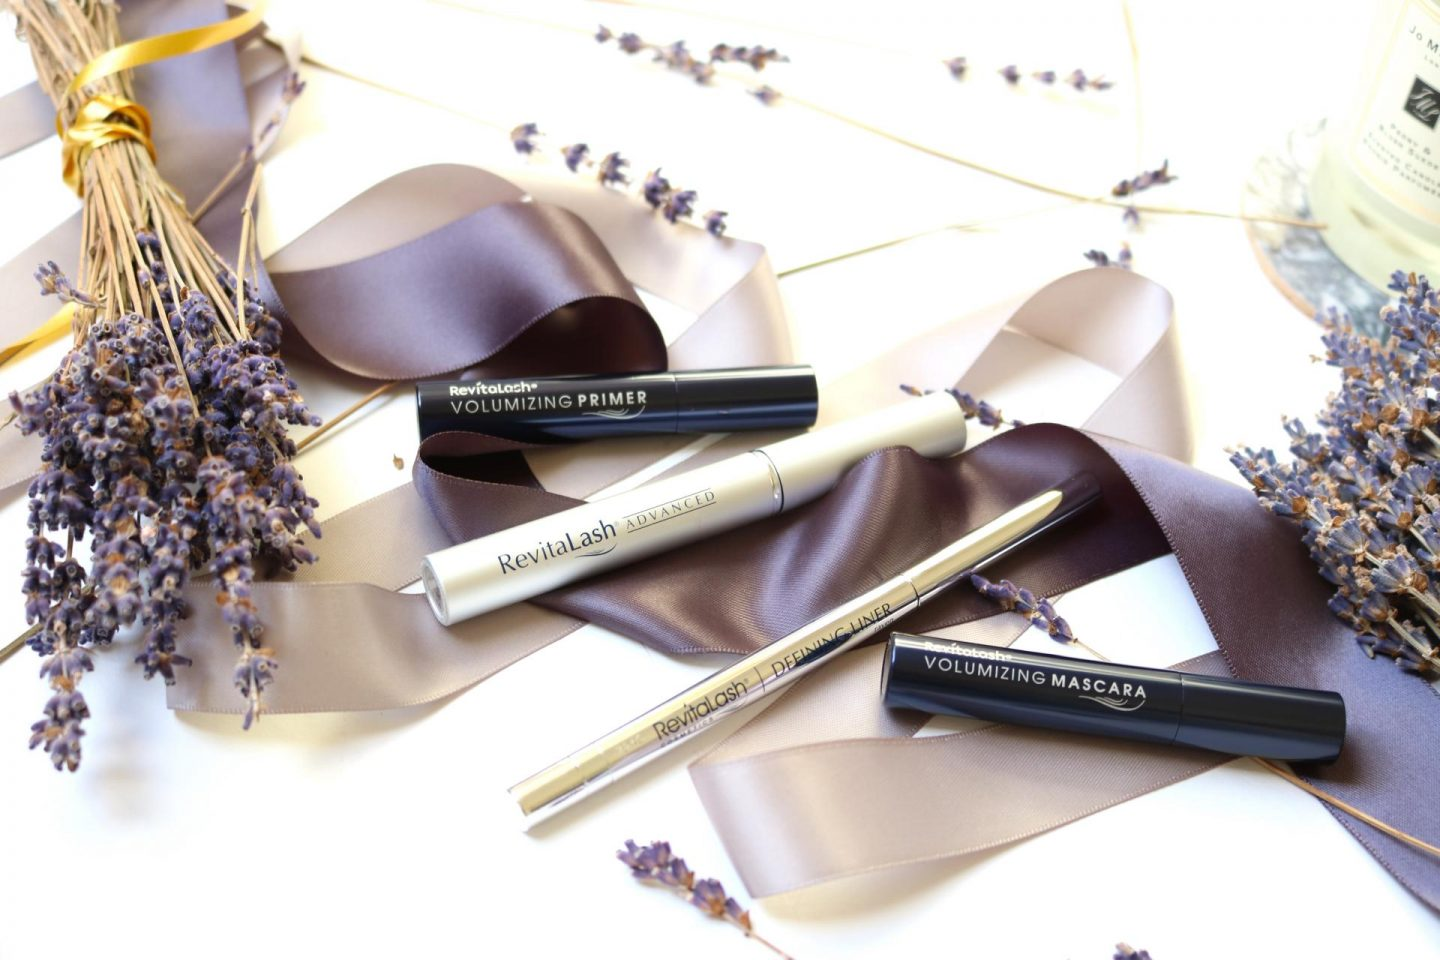 Revitalash is giving you the Lash Perfecting Gift Collection